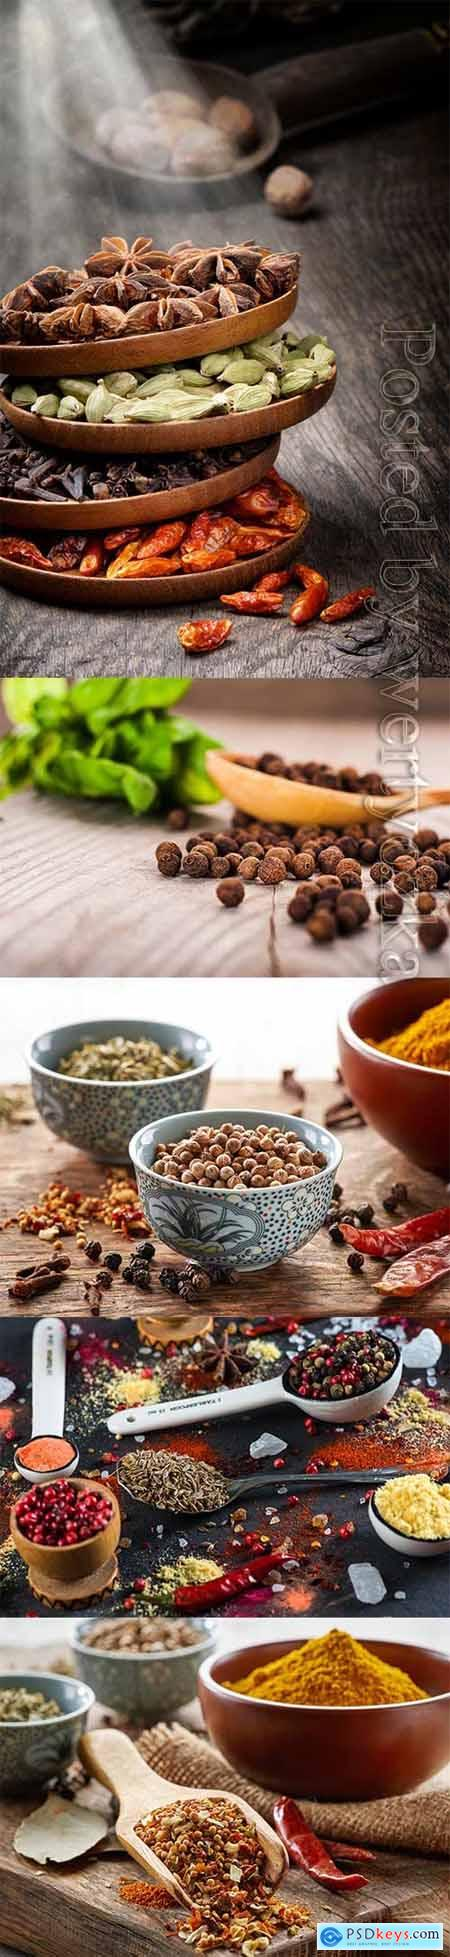 Various spices in various dishes stock photo